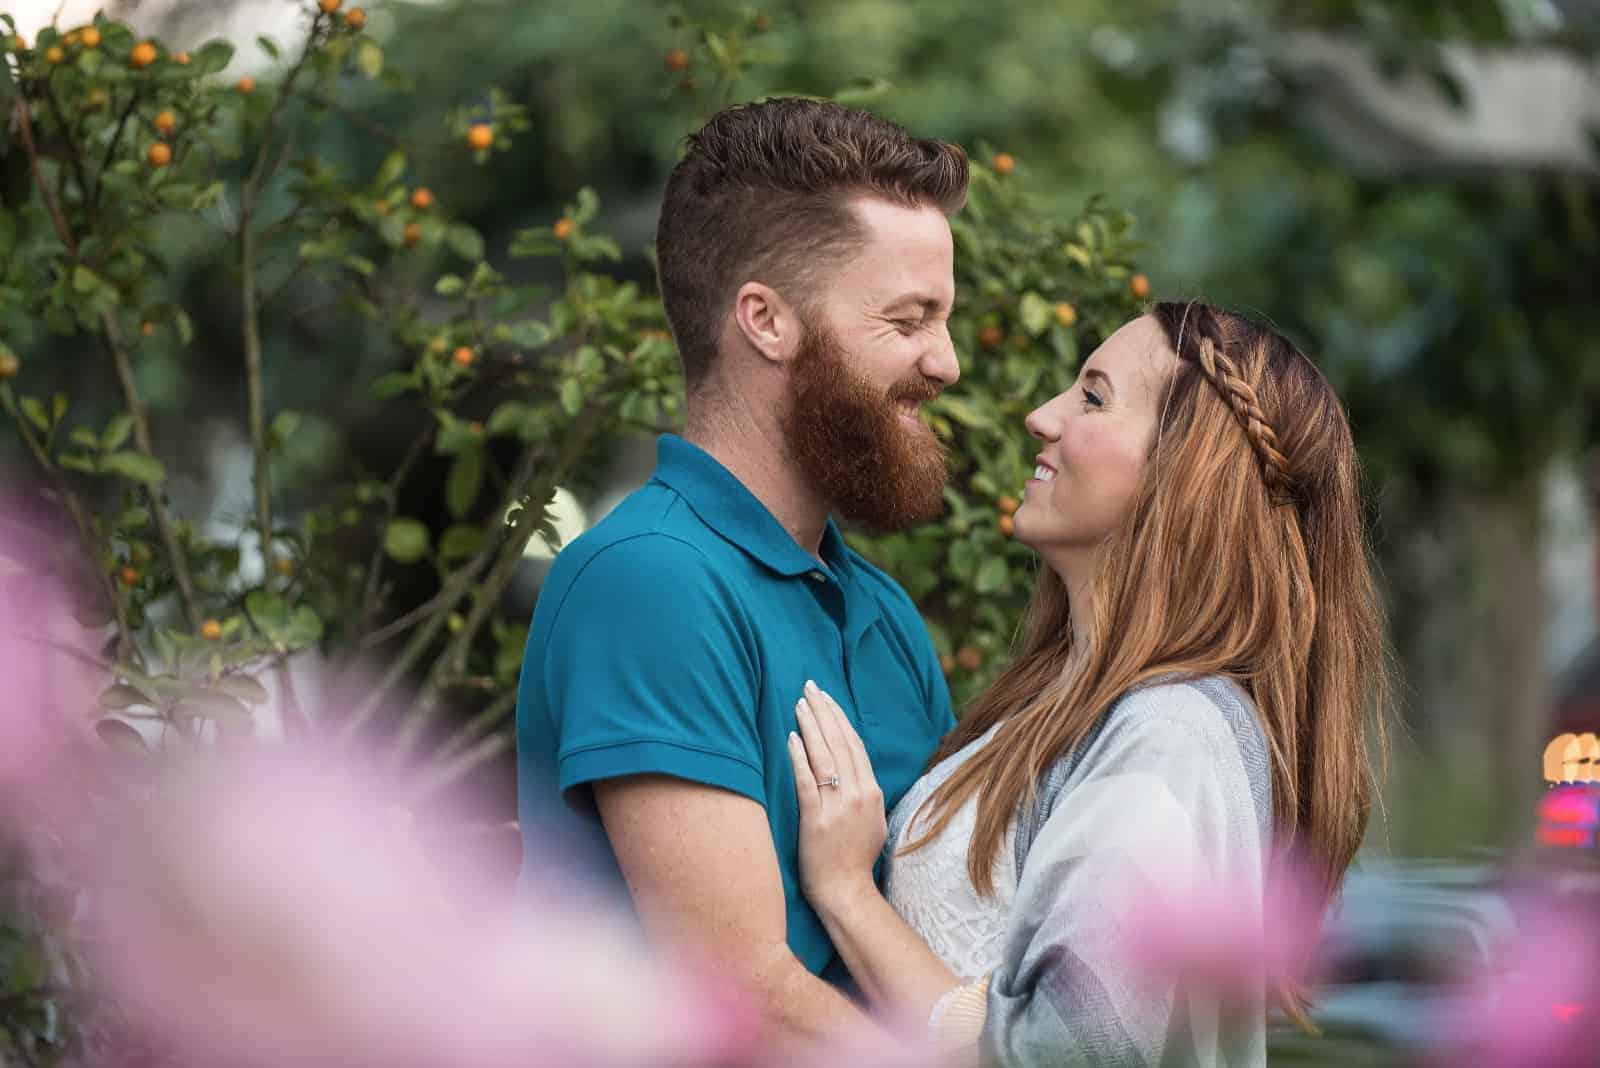 Beautiful Couple Smiling in a Park